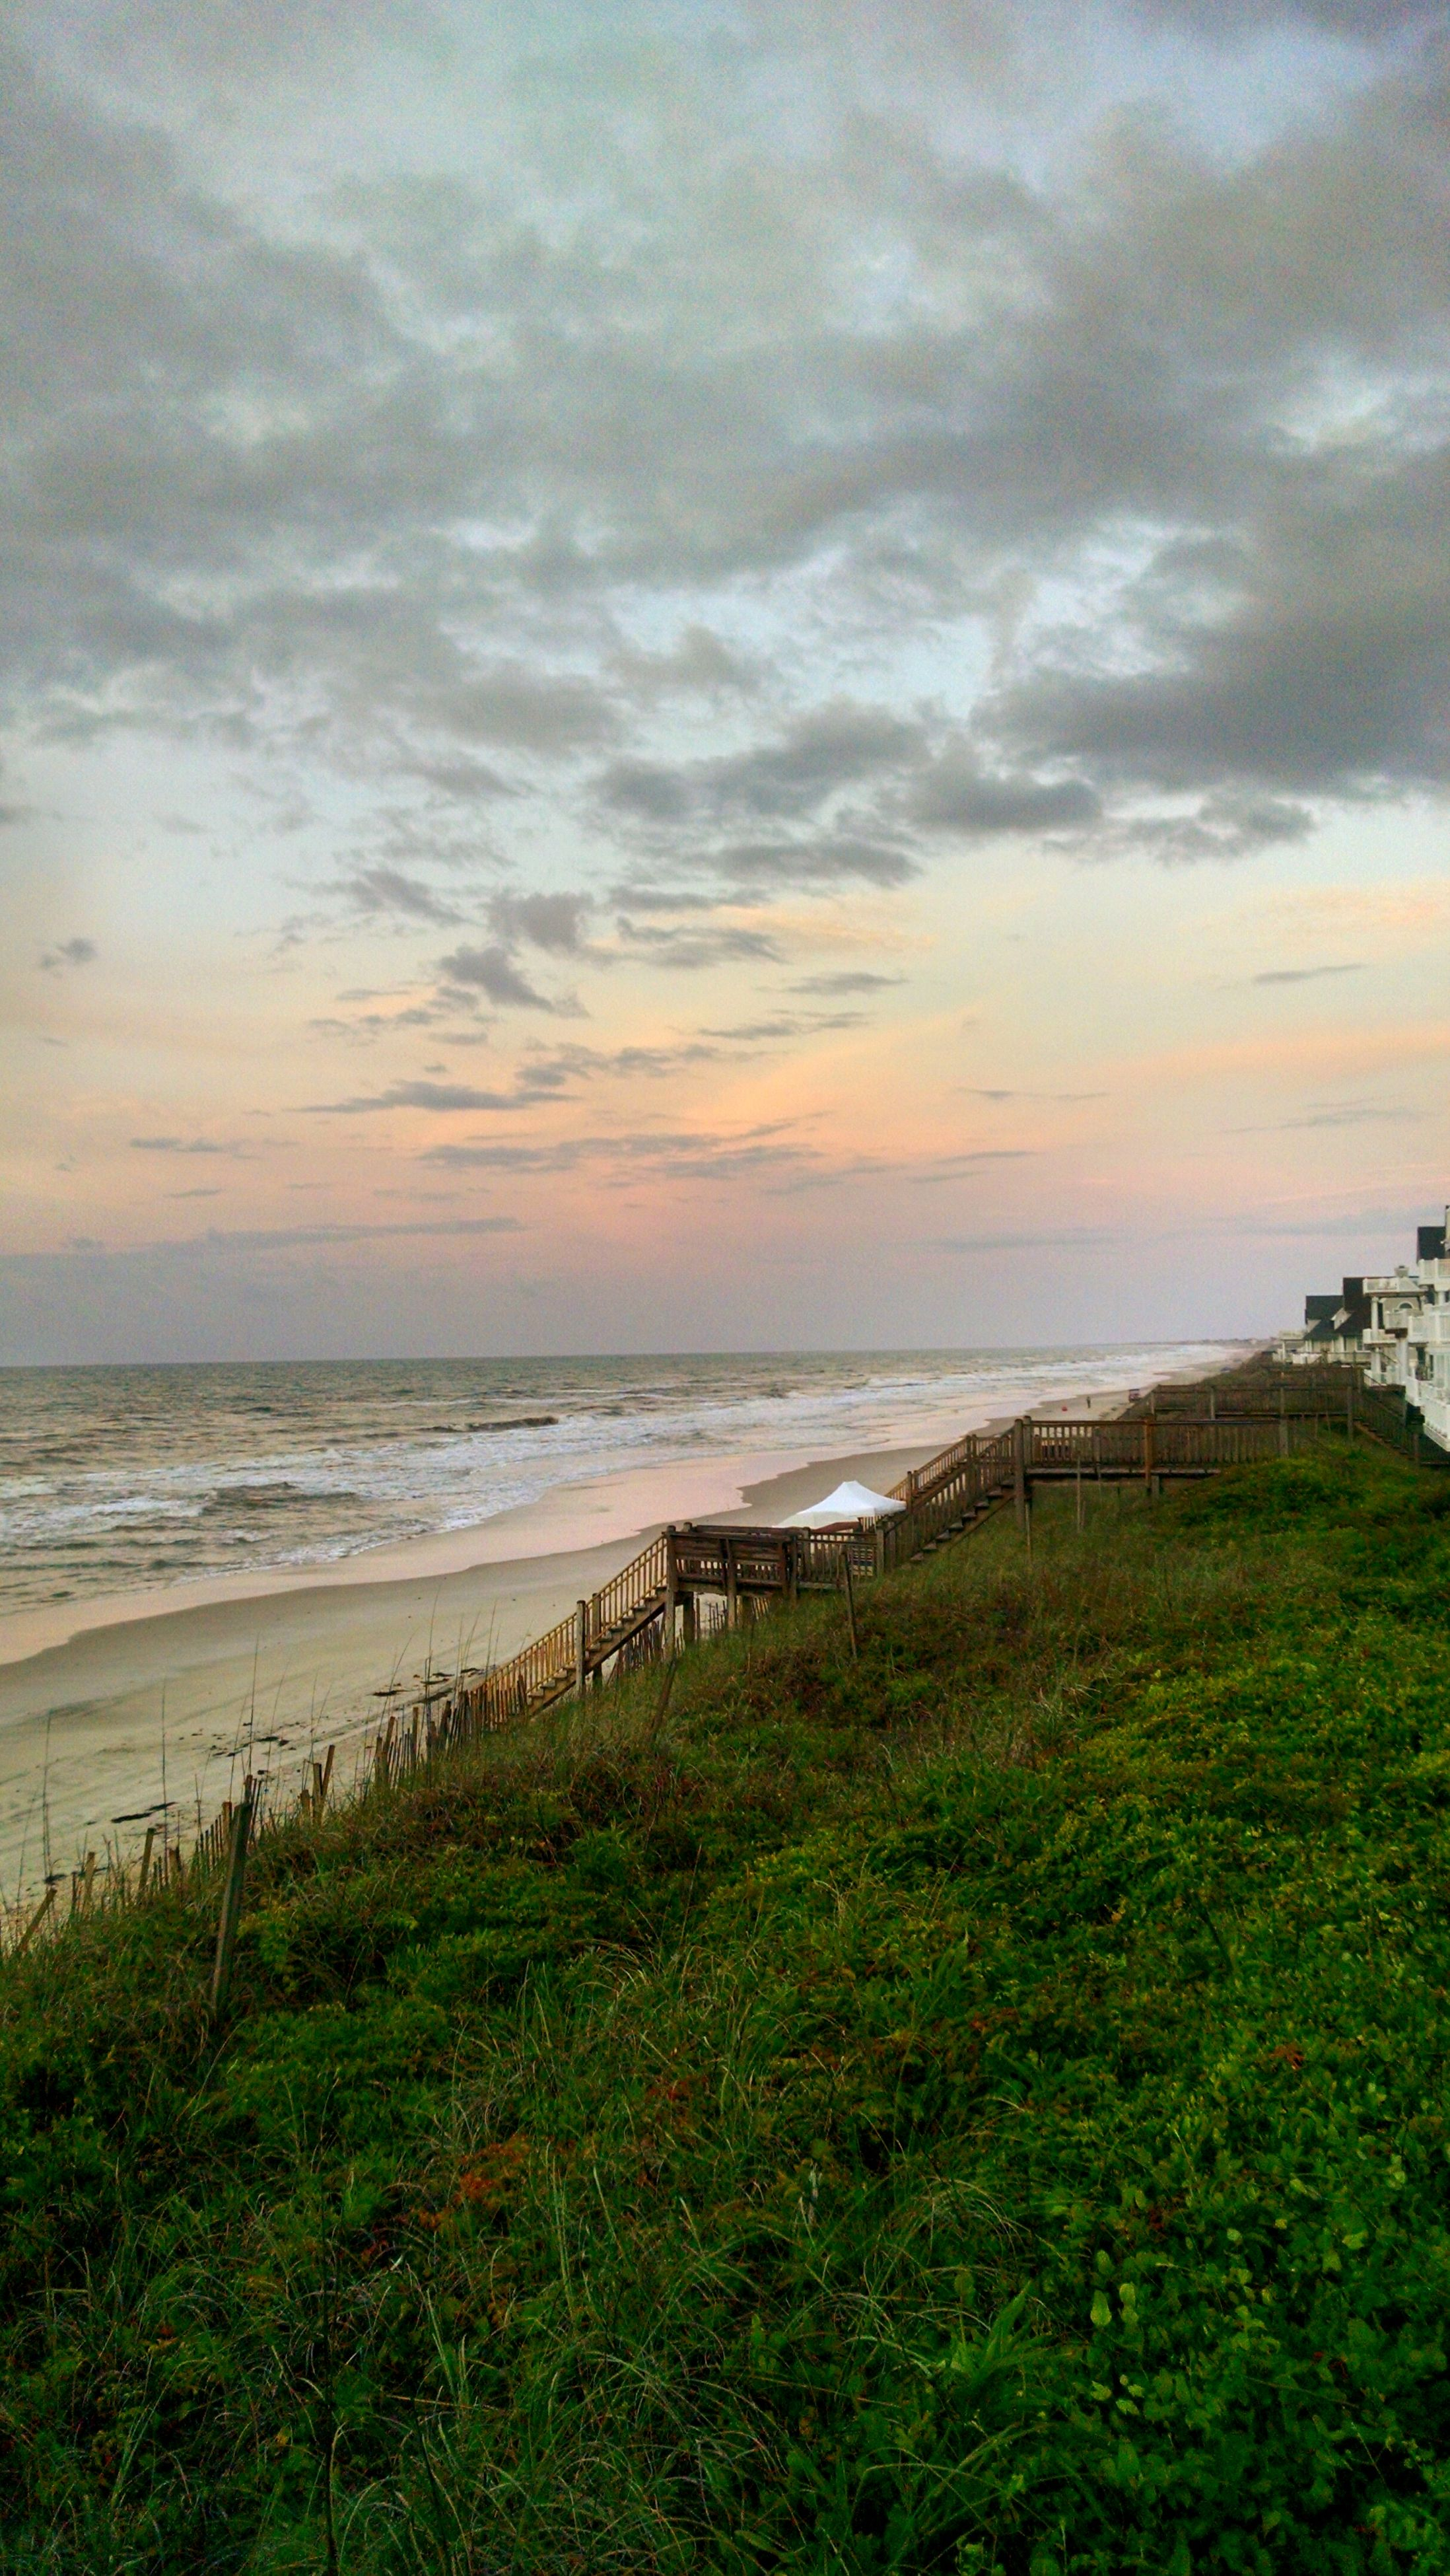 sea, sky, horizon over water, water, scenics, tranquil scene, cloud - sky, beauty in nature, tranquility, beach, grass, shore, nature, cloudy, sunset, cloud, idyllic, coastline, outdoors, plant